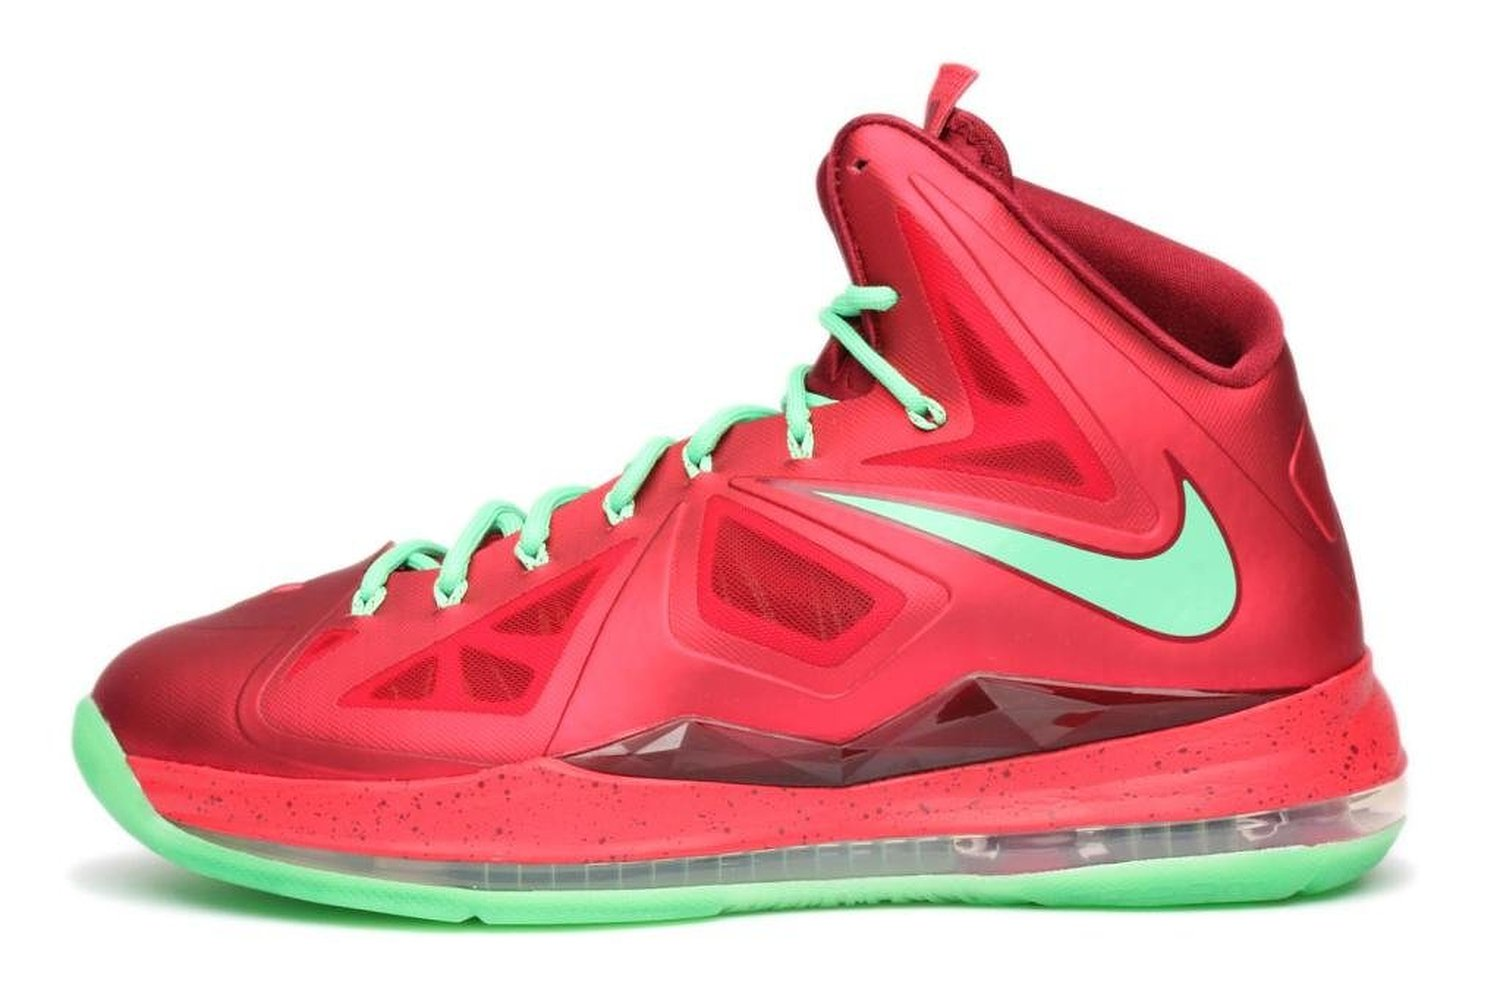 a84144a5ffe71 Get Quotations · Nike Mens Lebron X Christmas Day Red Tremlin 541100-600